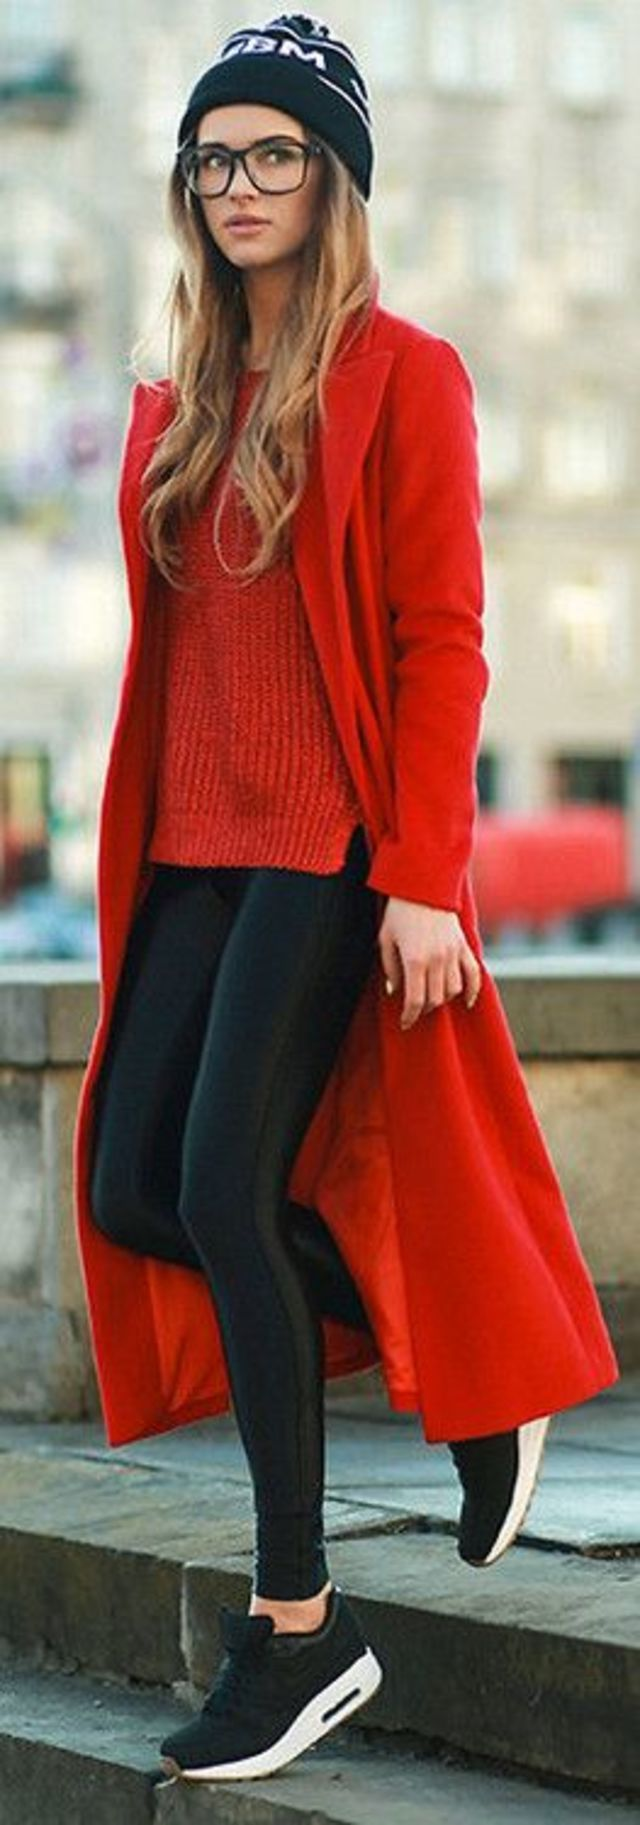 Mix up the luxe vibe of a red statement coat with the chill vibe of leggings, trainers and a beanie.    #GoBold #BoldlyGo #Style  workinglook.com